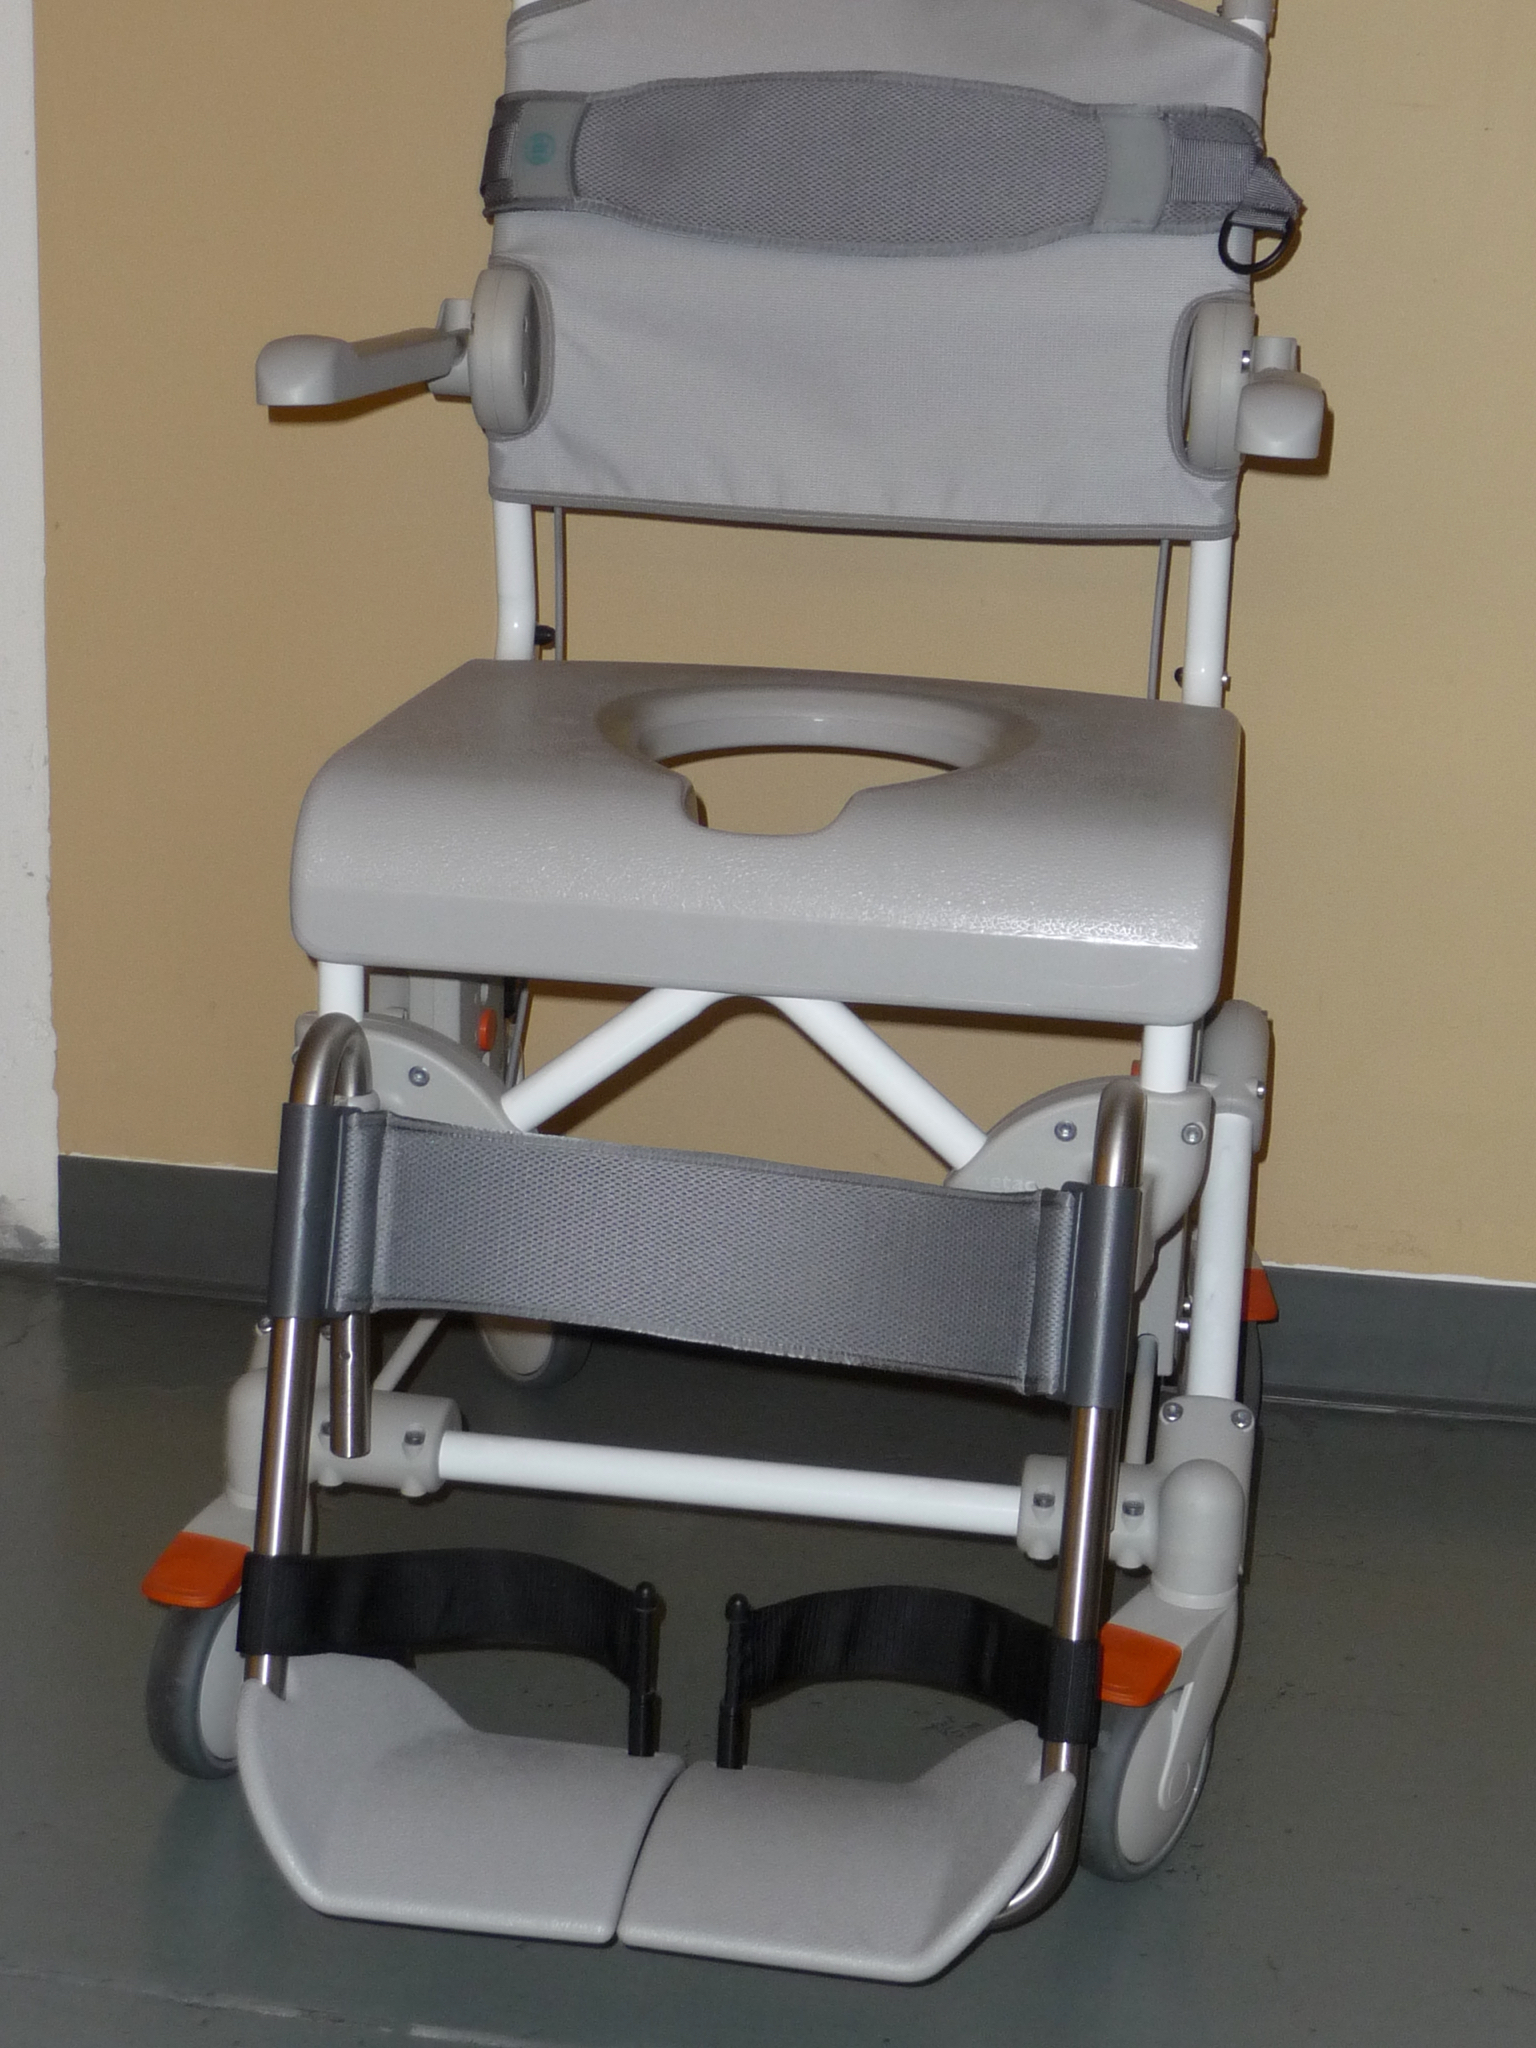 point - Postioning Harnesses & Belts for Wheelchairs